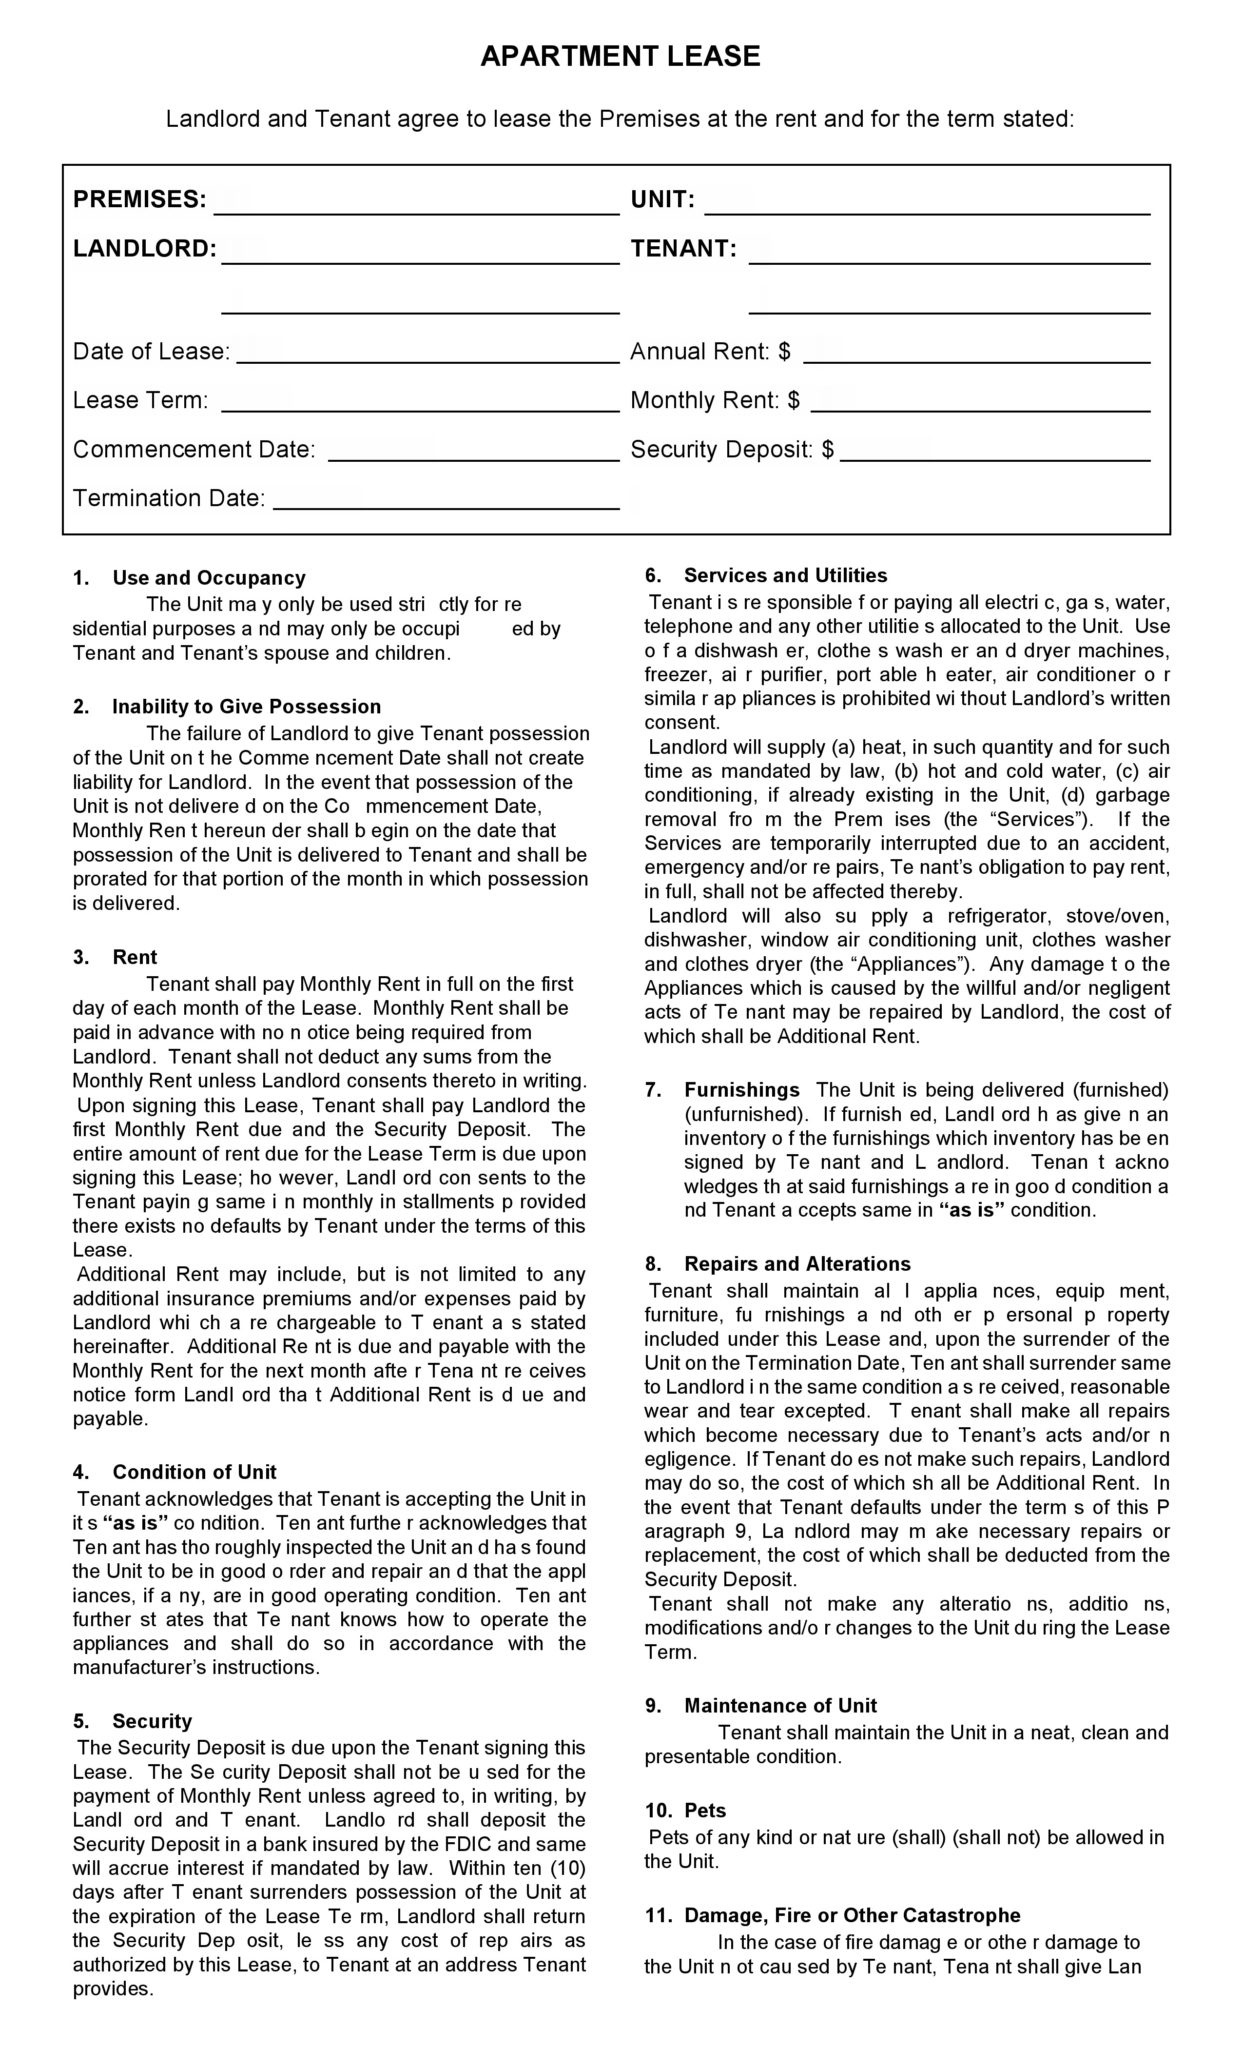 Free Printable Apartment Lease Agreement - Printable Agreements - Free Printable Lease